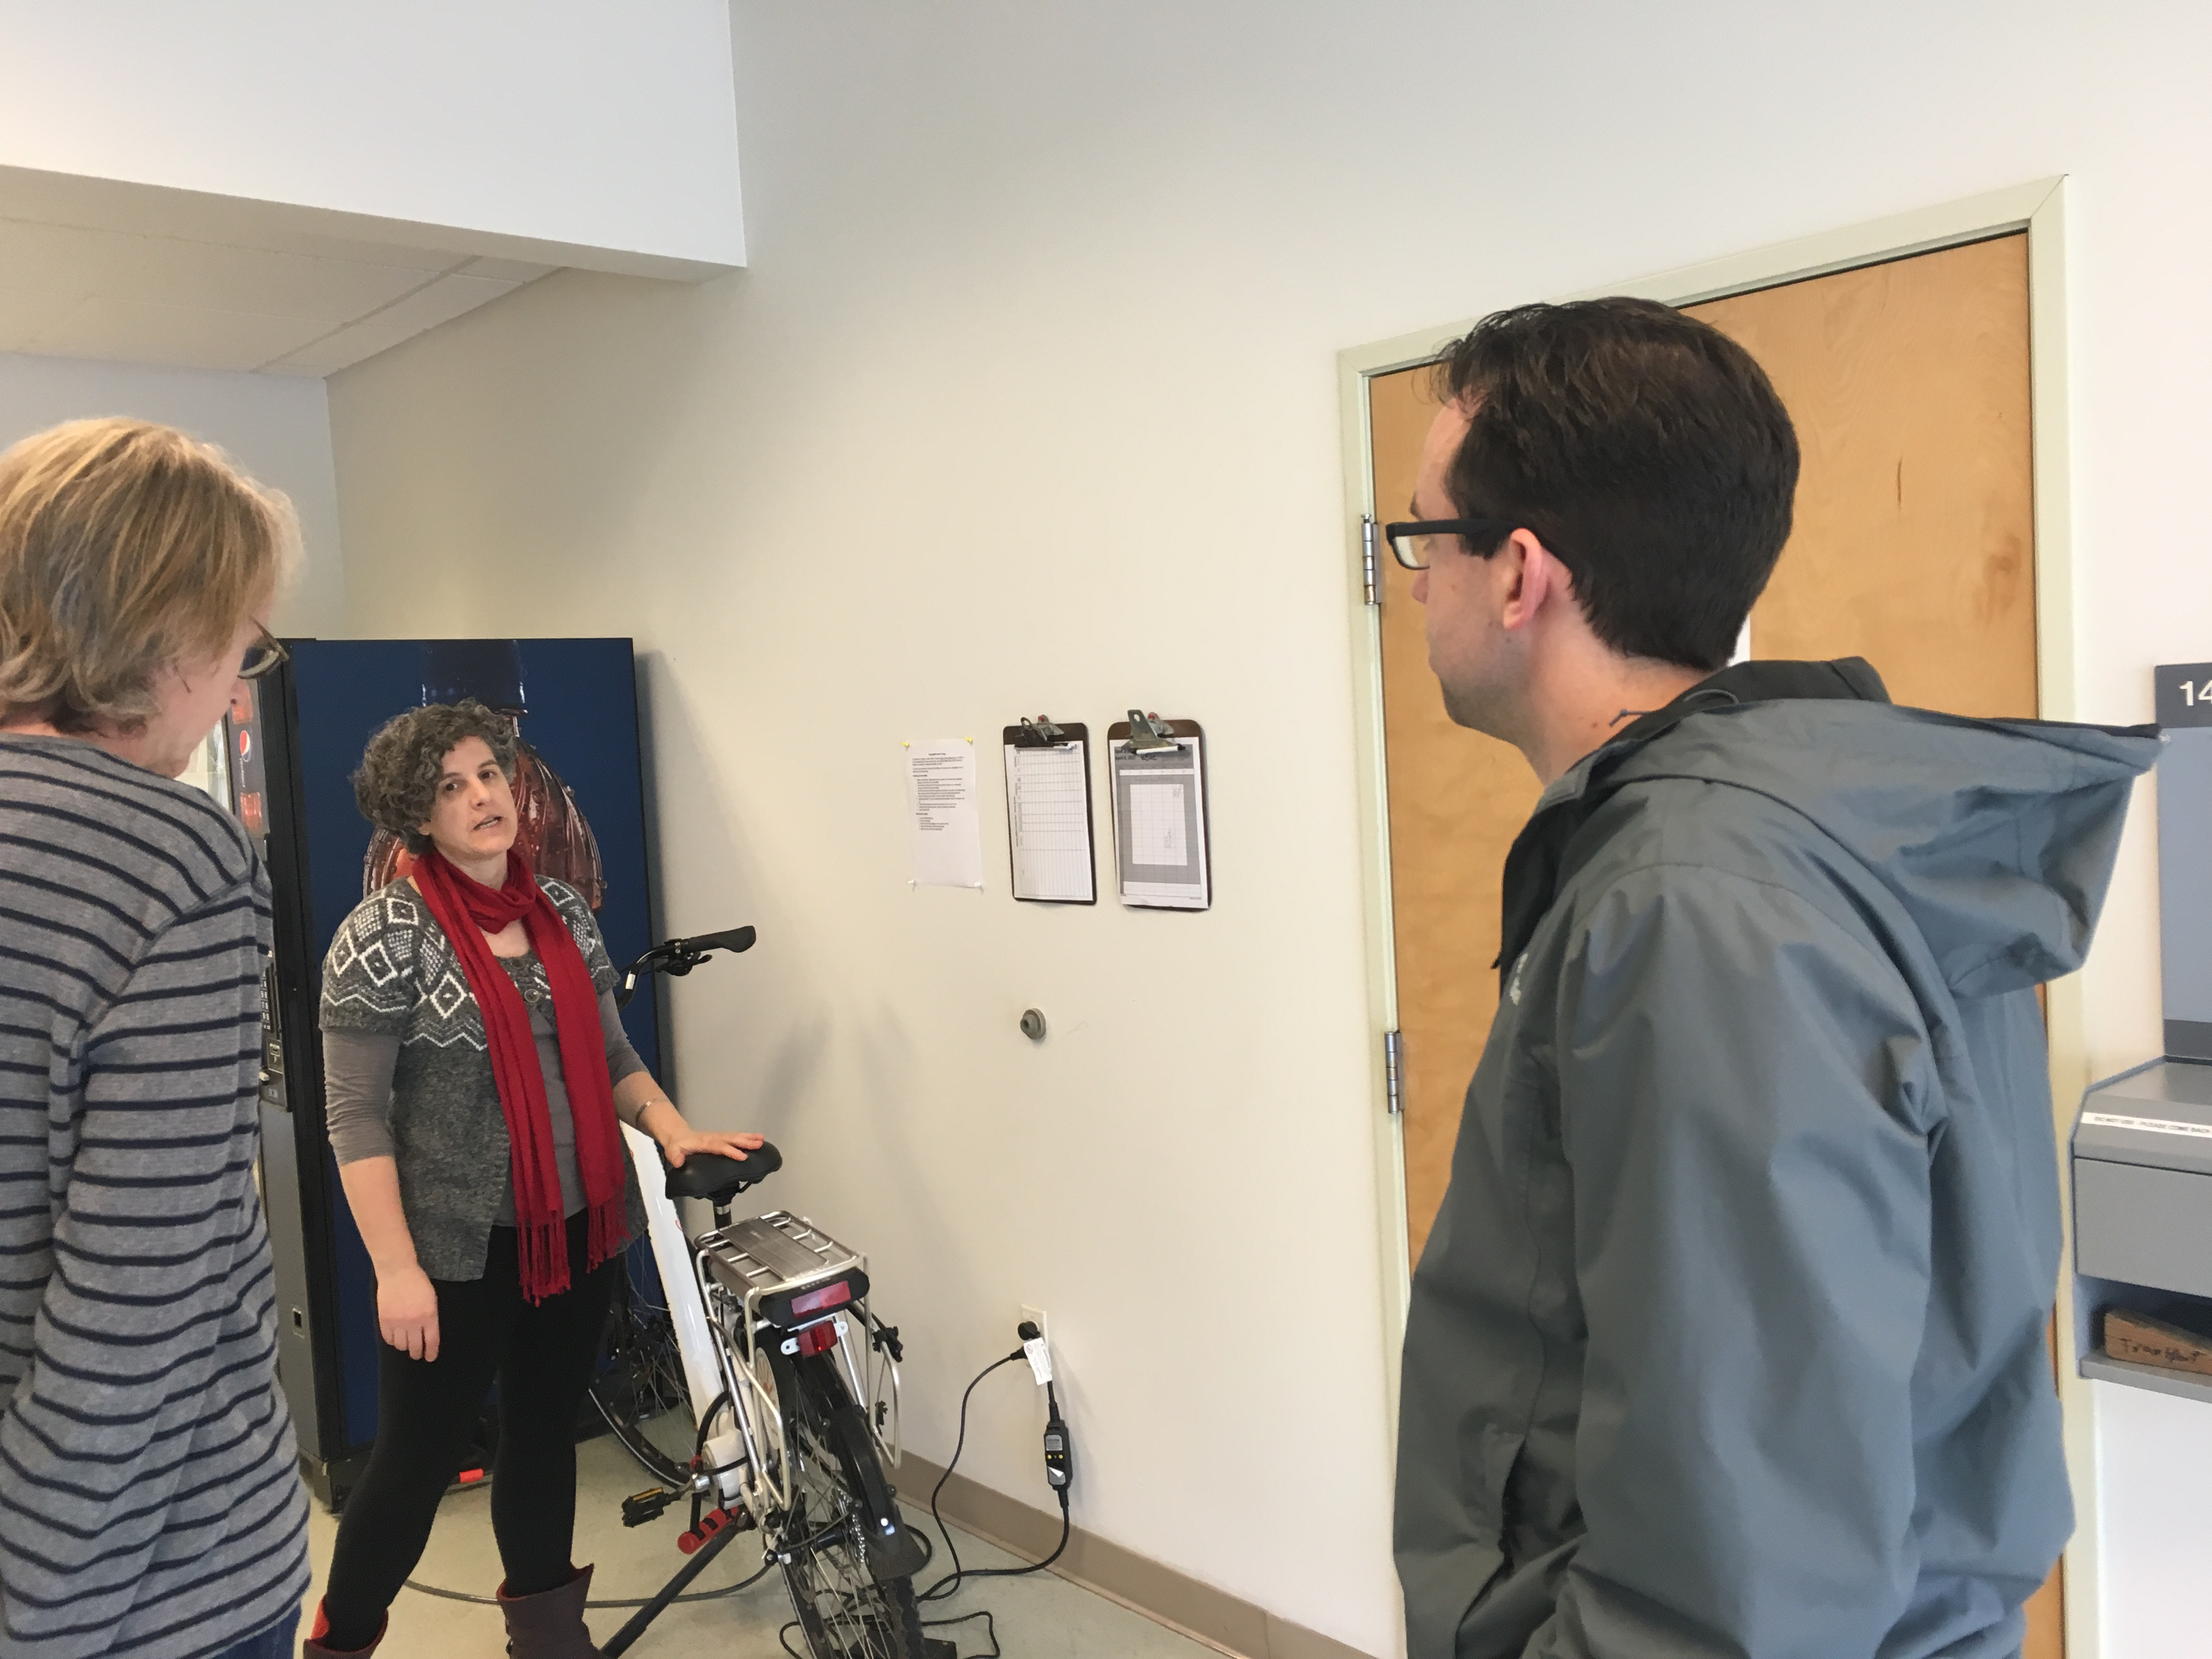 Woman stands next to bike, two other people face woman